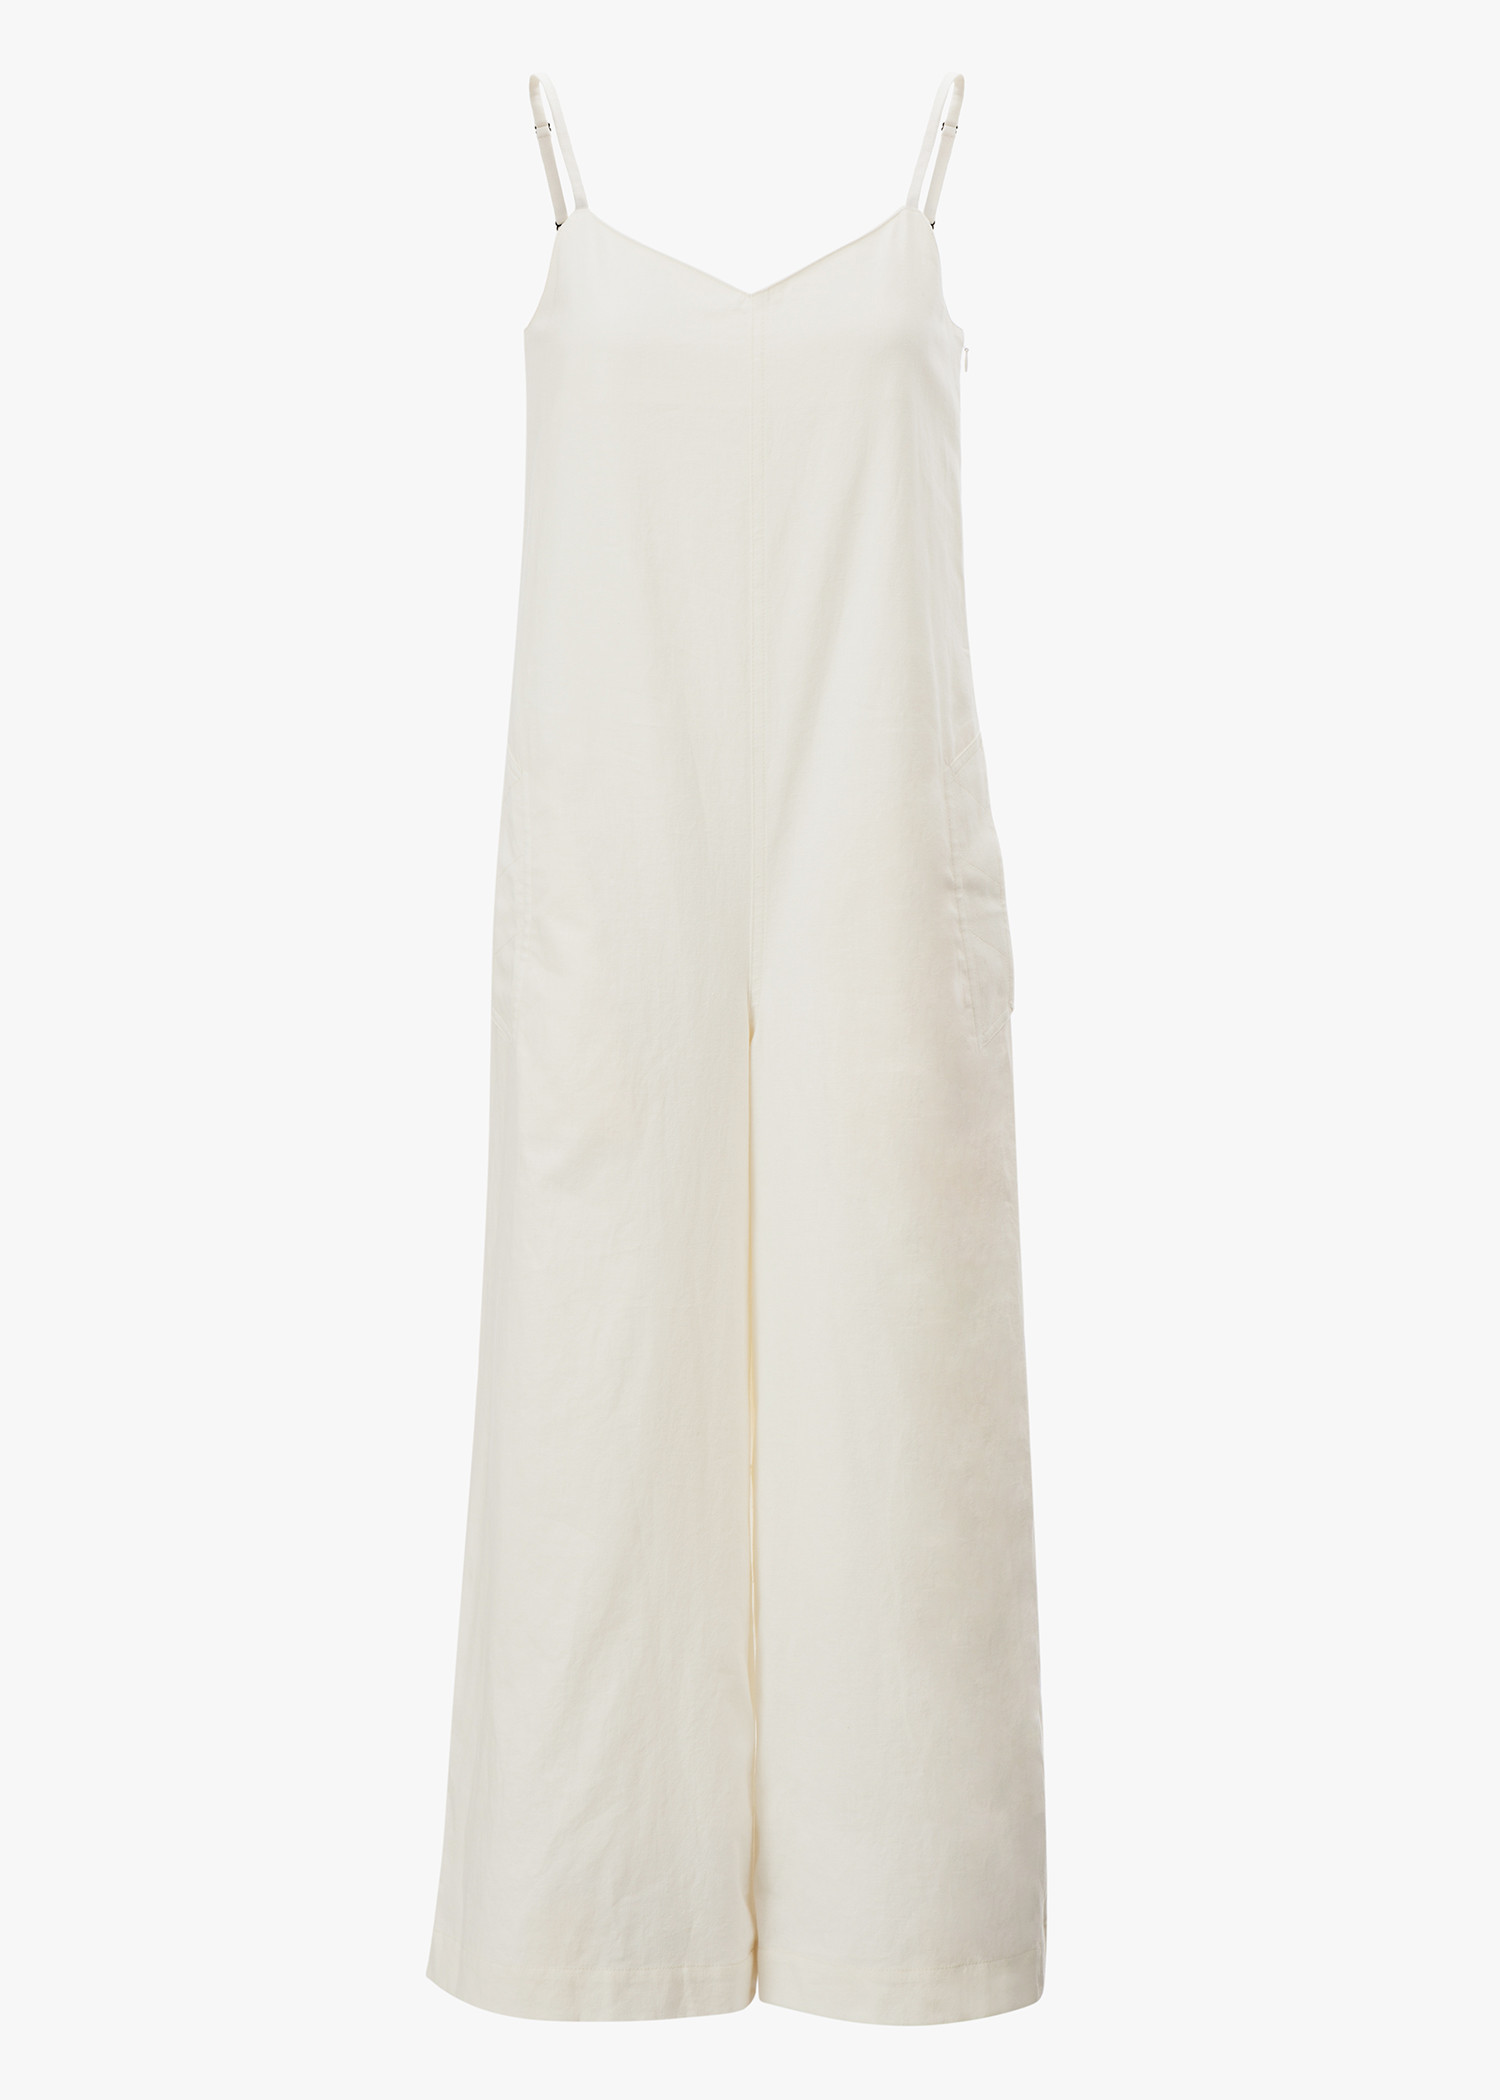 Y's Cami Overall In White